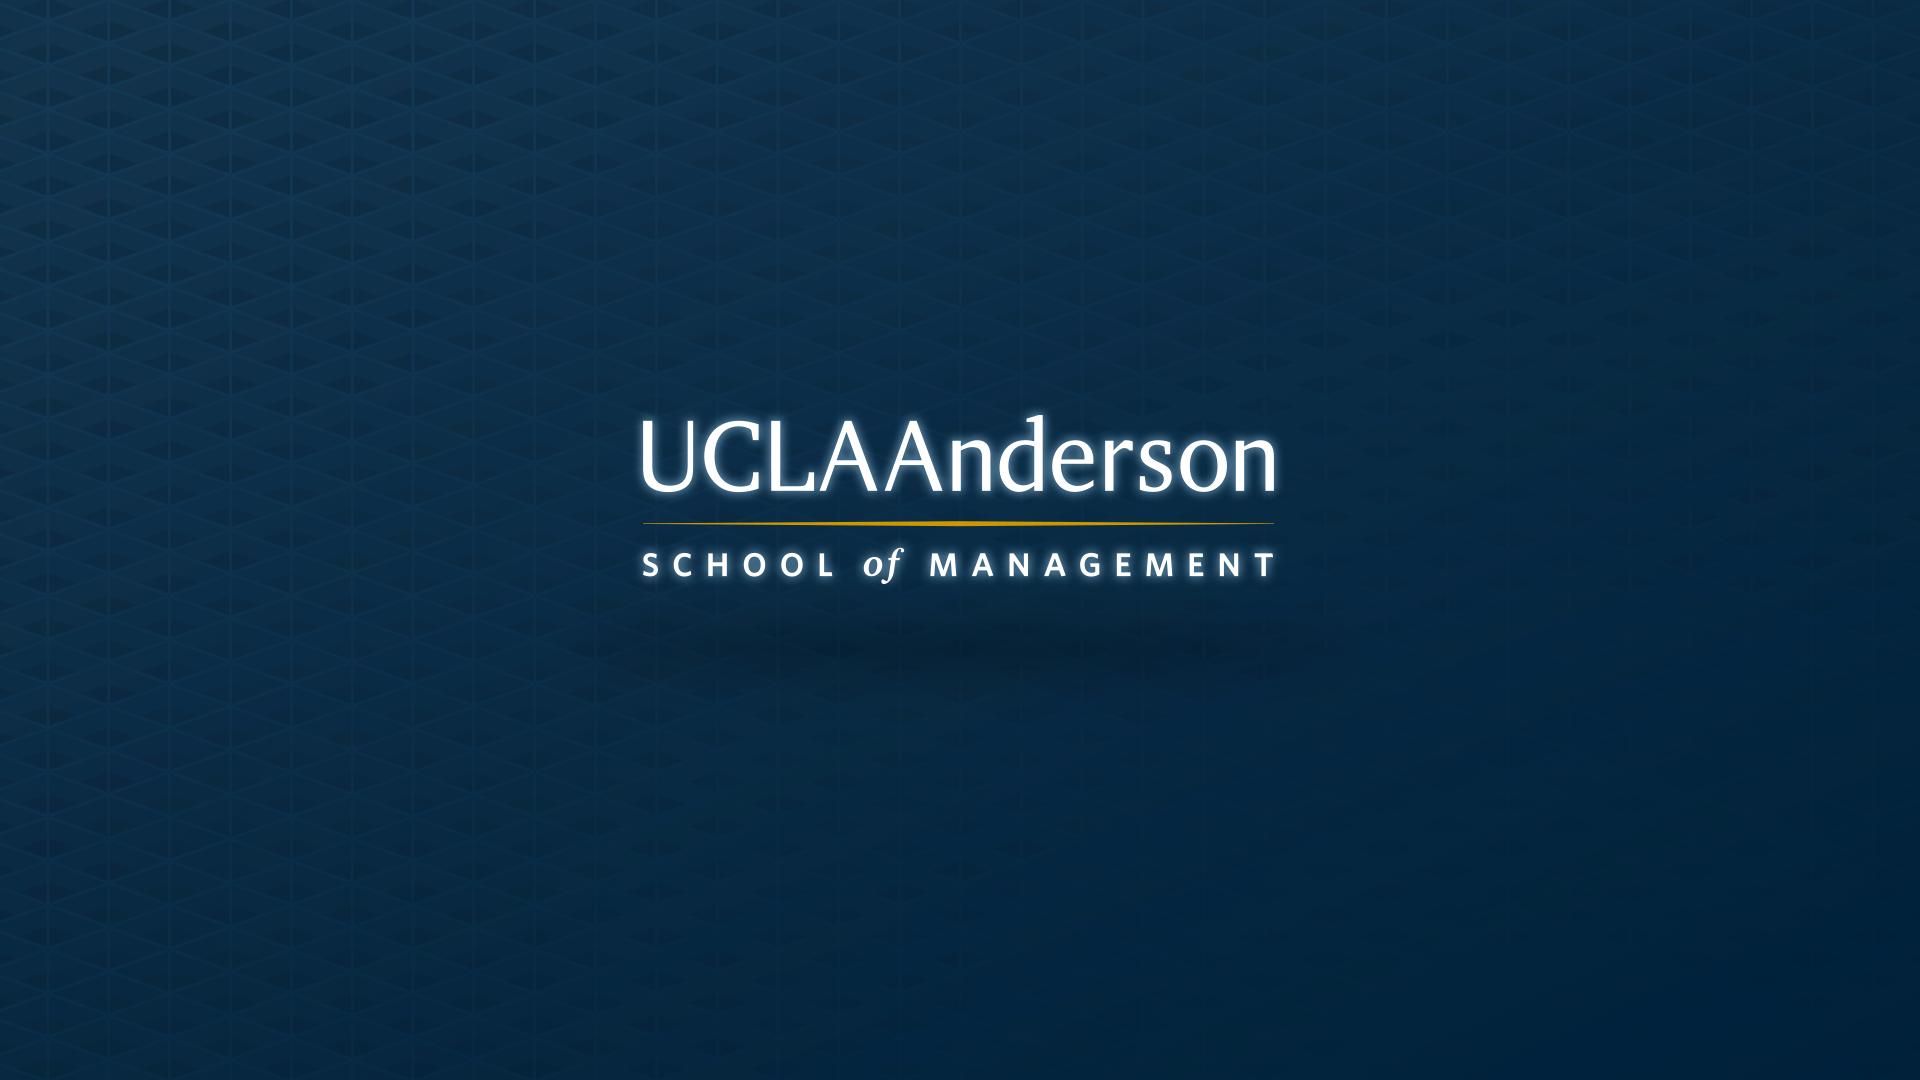 ucla anderson essays 2009 A fairly typical career goals essay, the ucla mba program is asking for a clear set of career goals that will demonstrate the need for an mba from ucla anderson drawing a thread between your past experiences, your mba from anderson, and the short- and long-term goals you plan to pursue will be most effective.